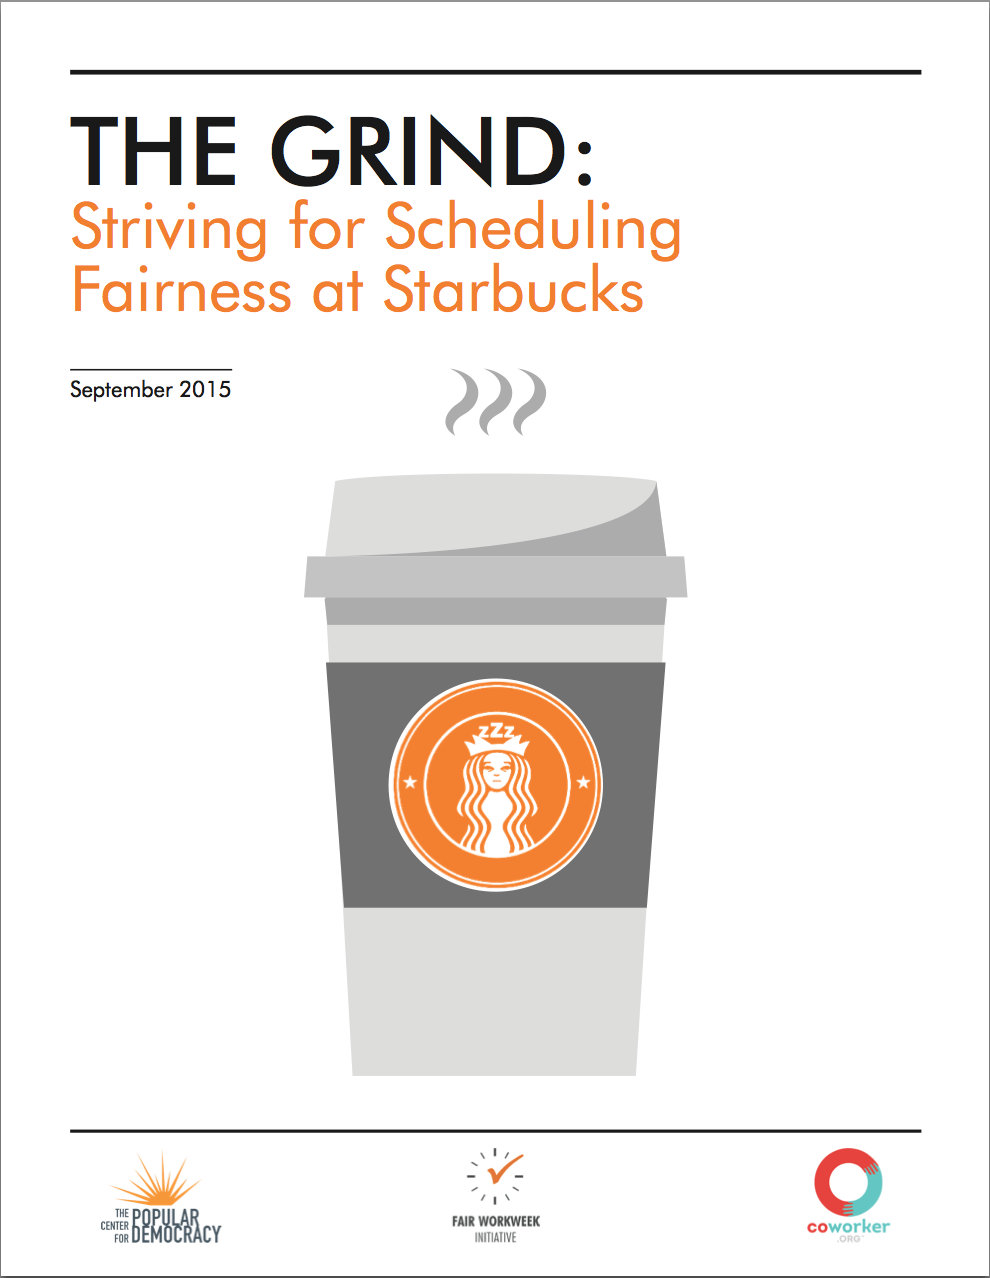 The Grind: Striving for Scheduling Fairness at Starbucks